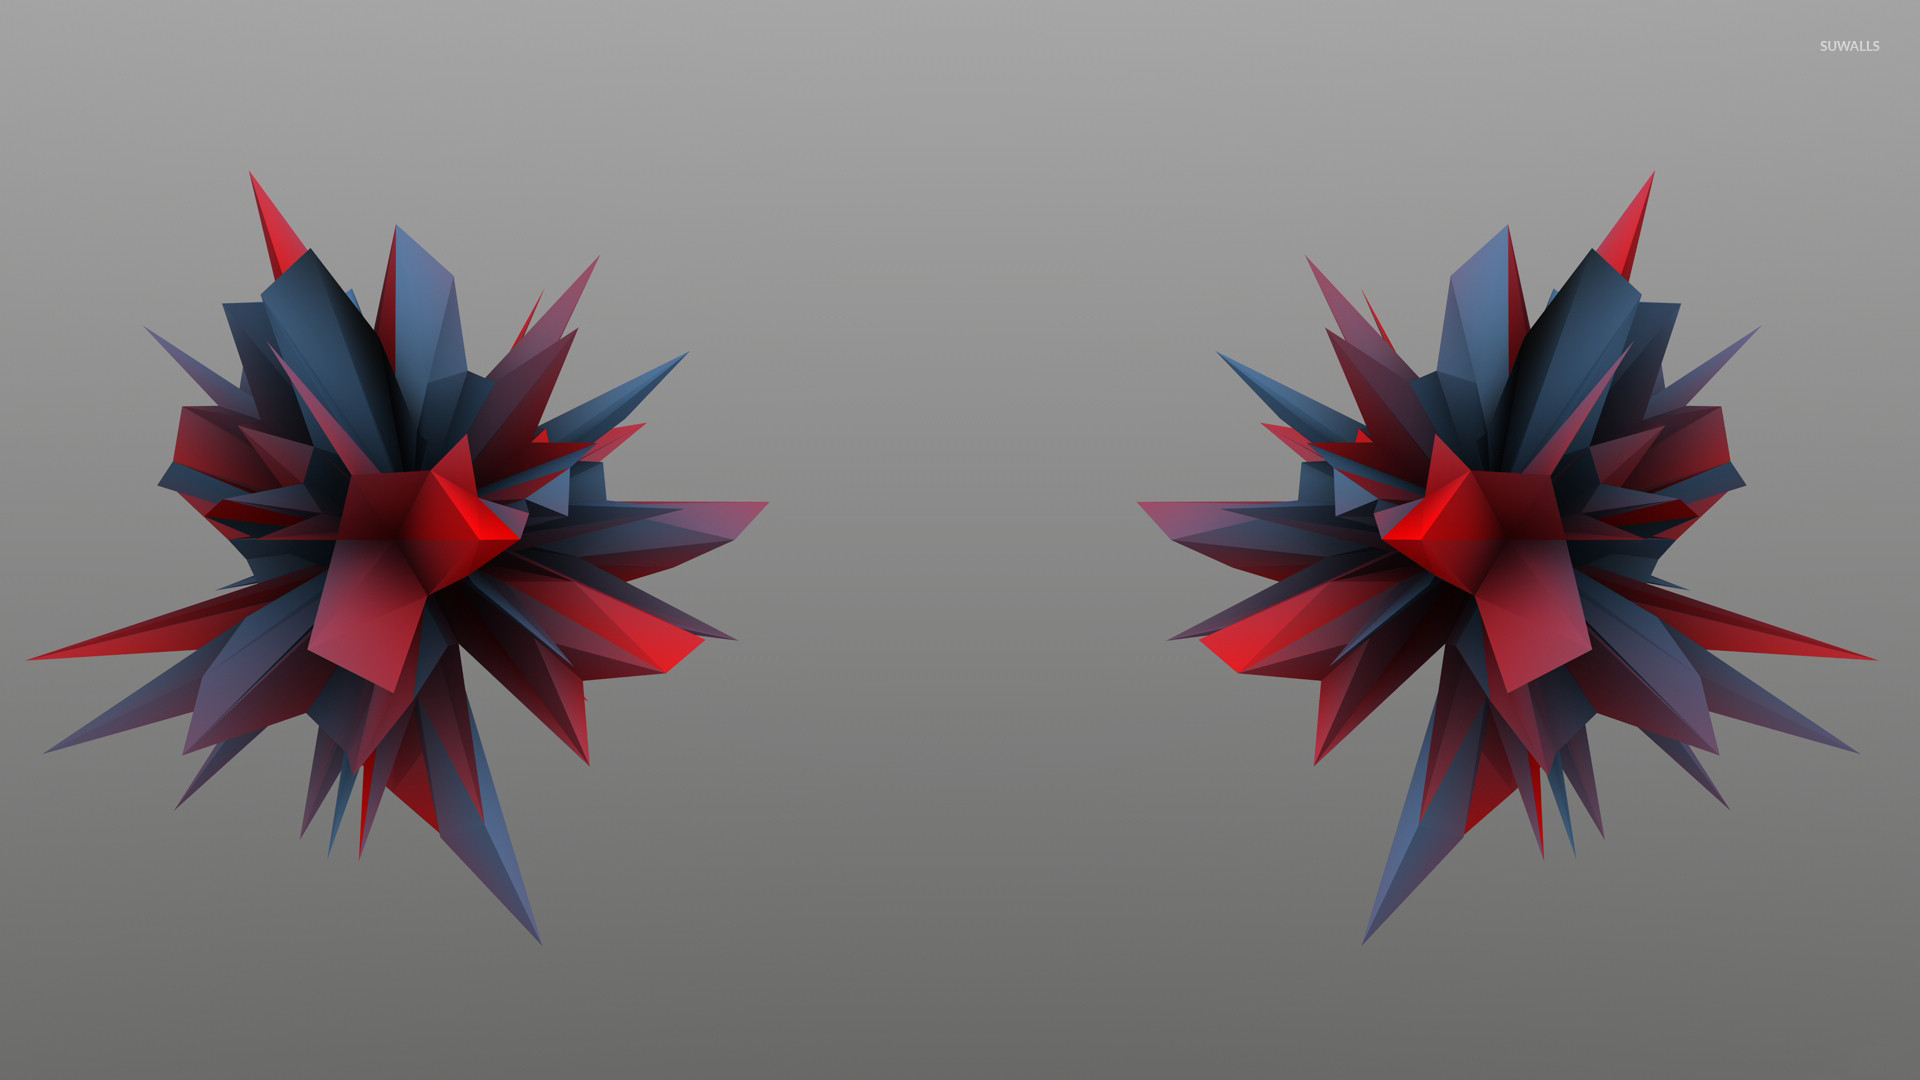 Red and blue thorns wallpaper jpg